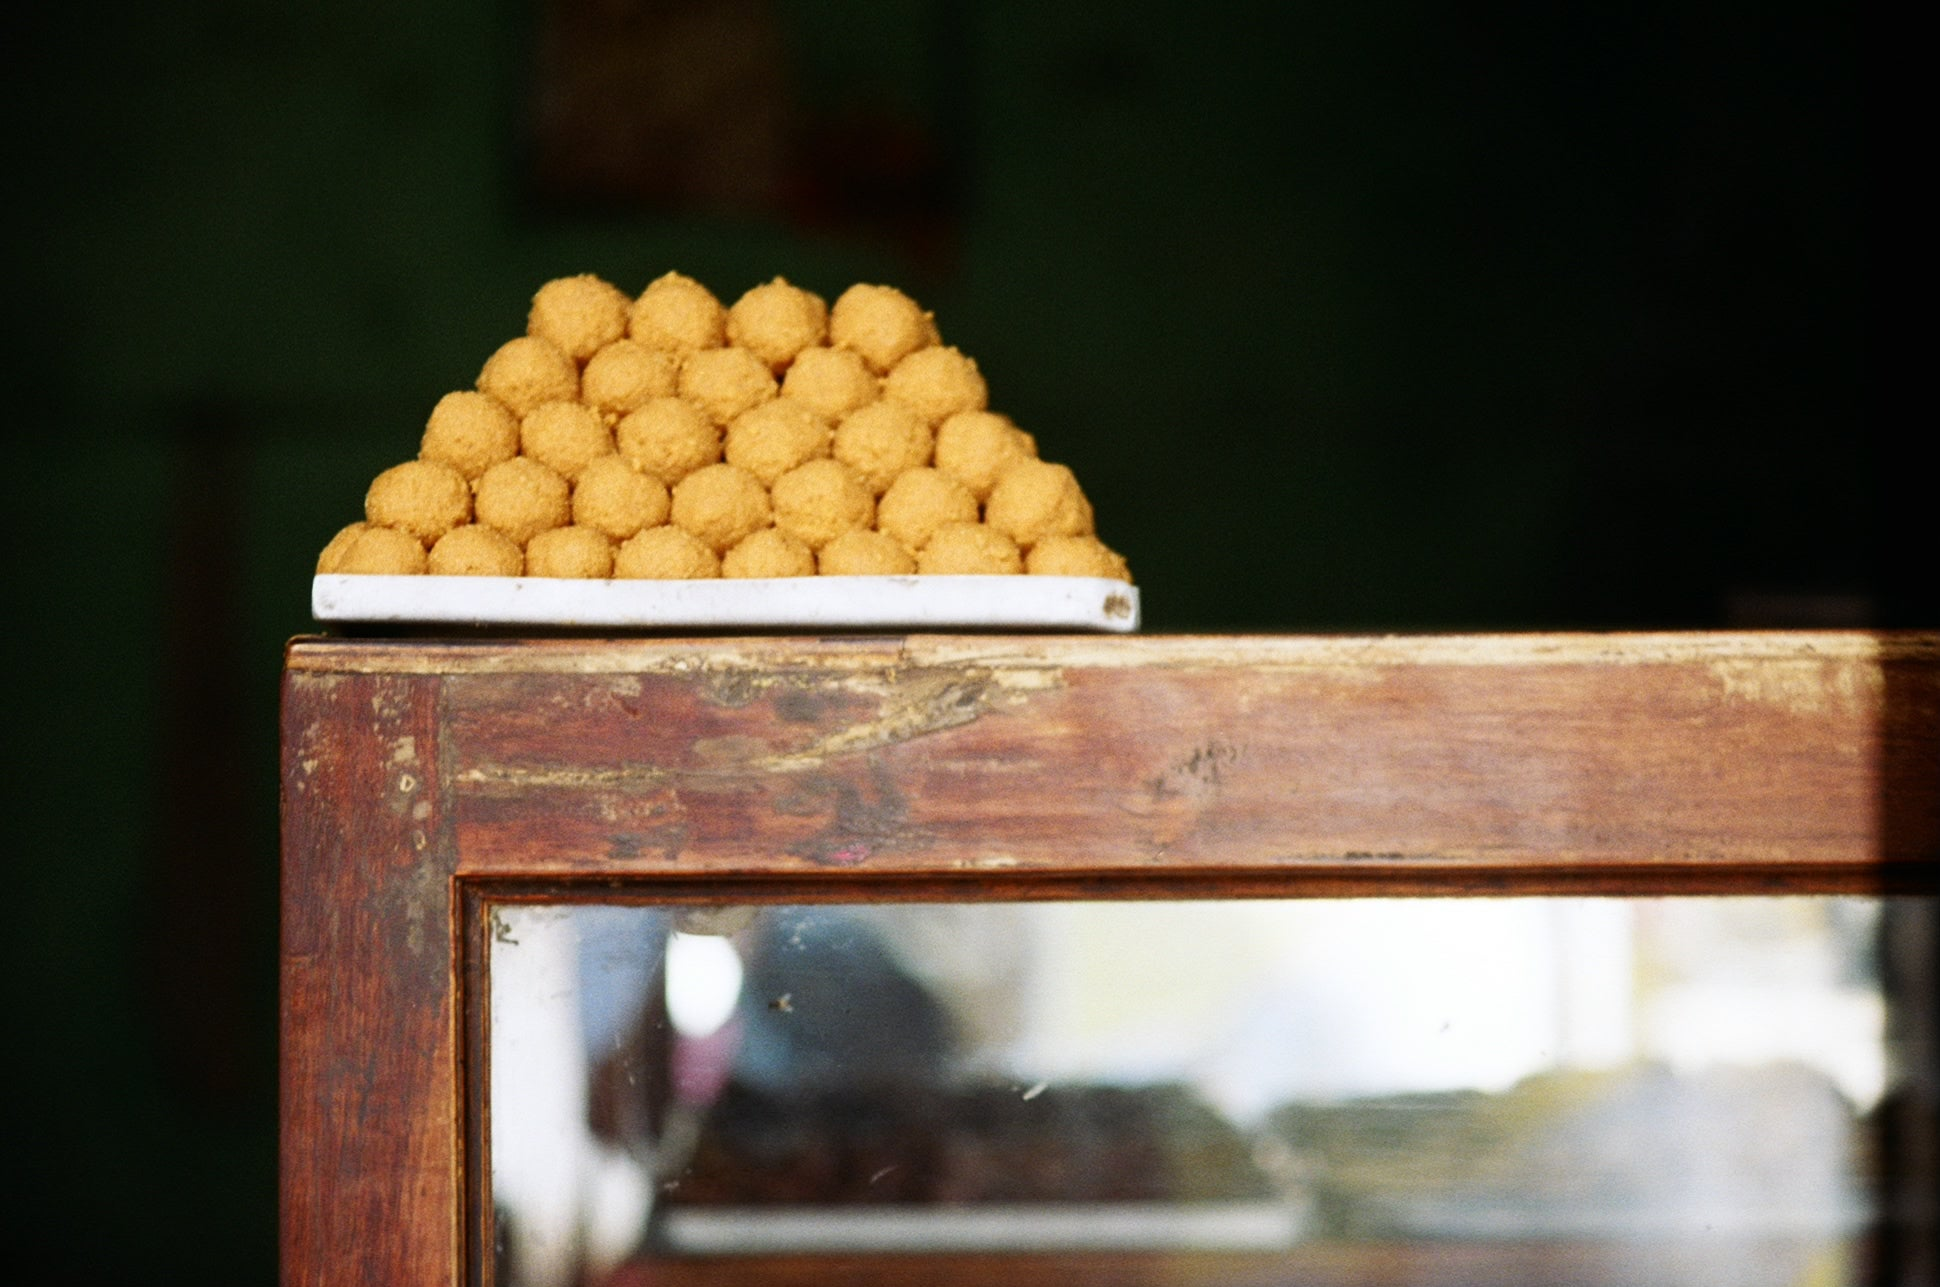 The India Sweets